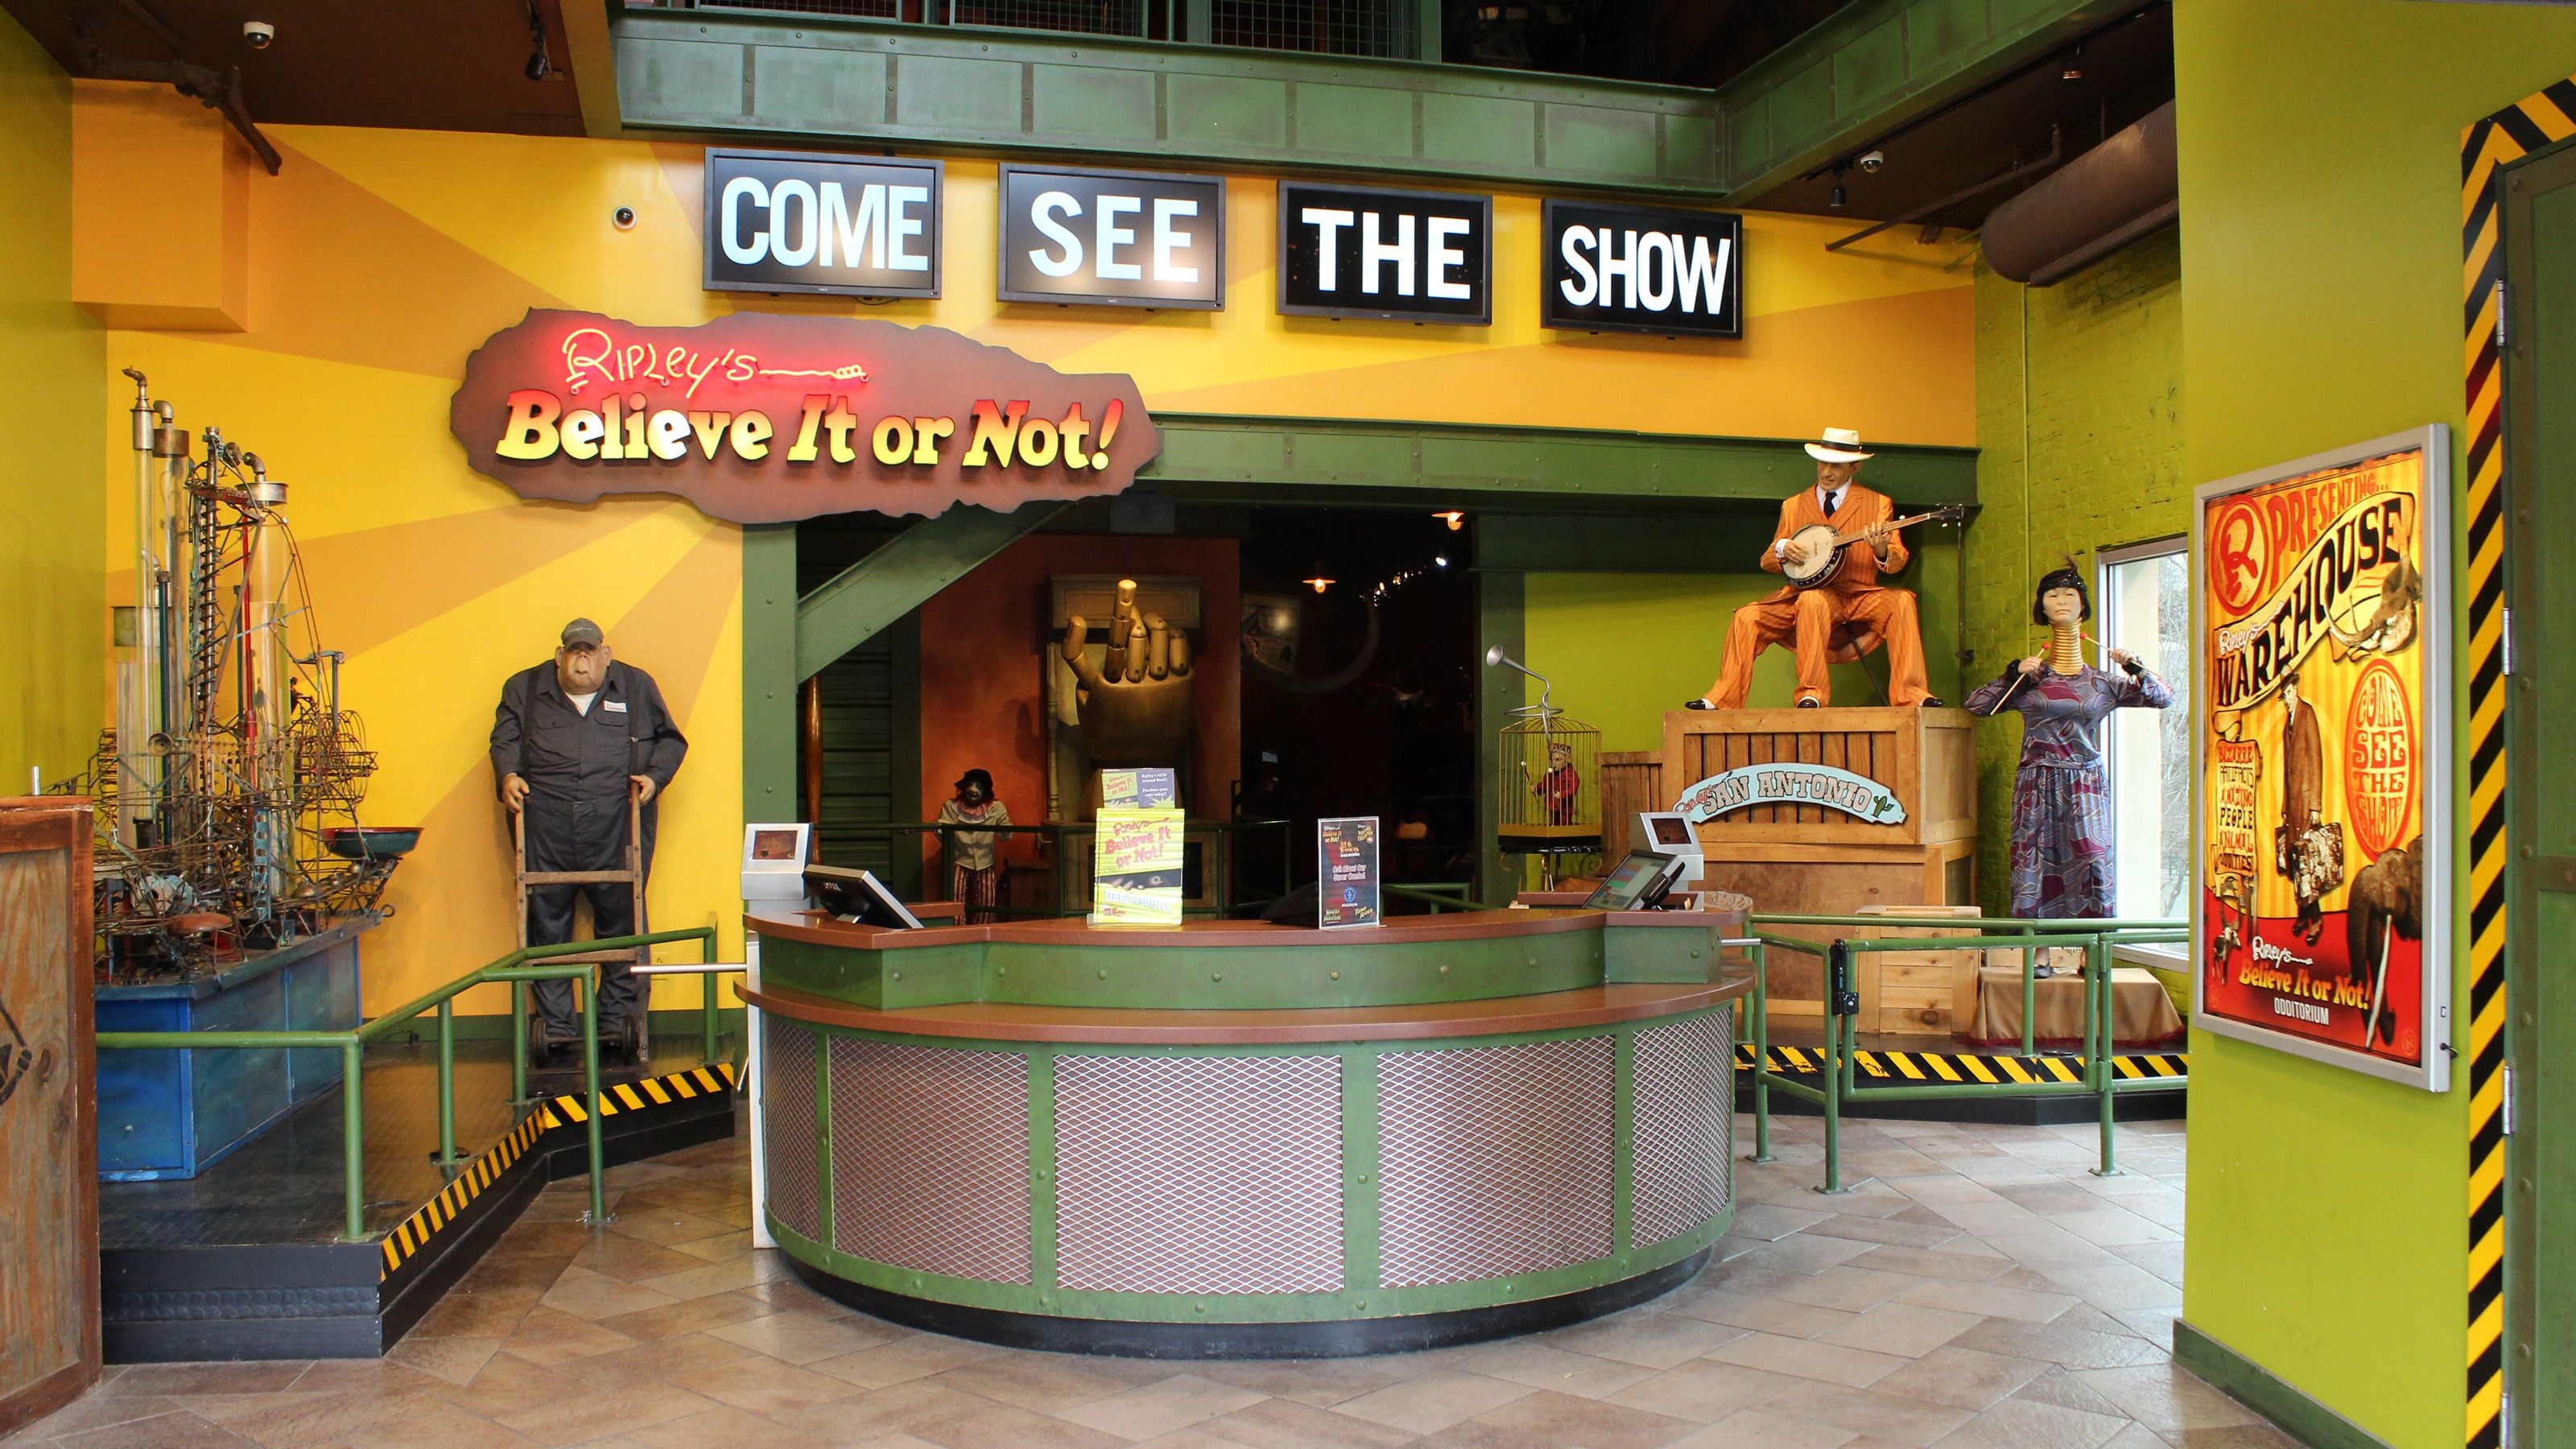 Ticket counter to Ripley's Believe It or Not! in San Antonio, Texas